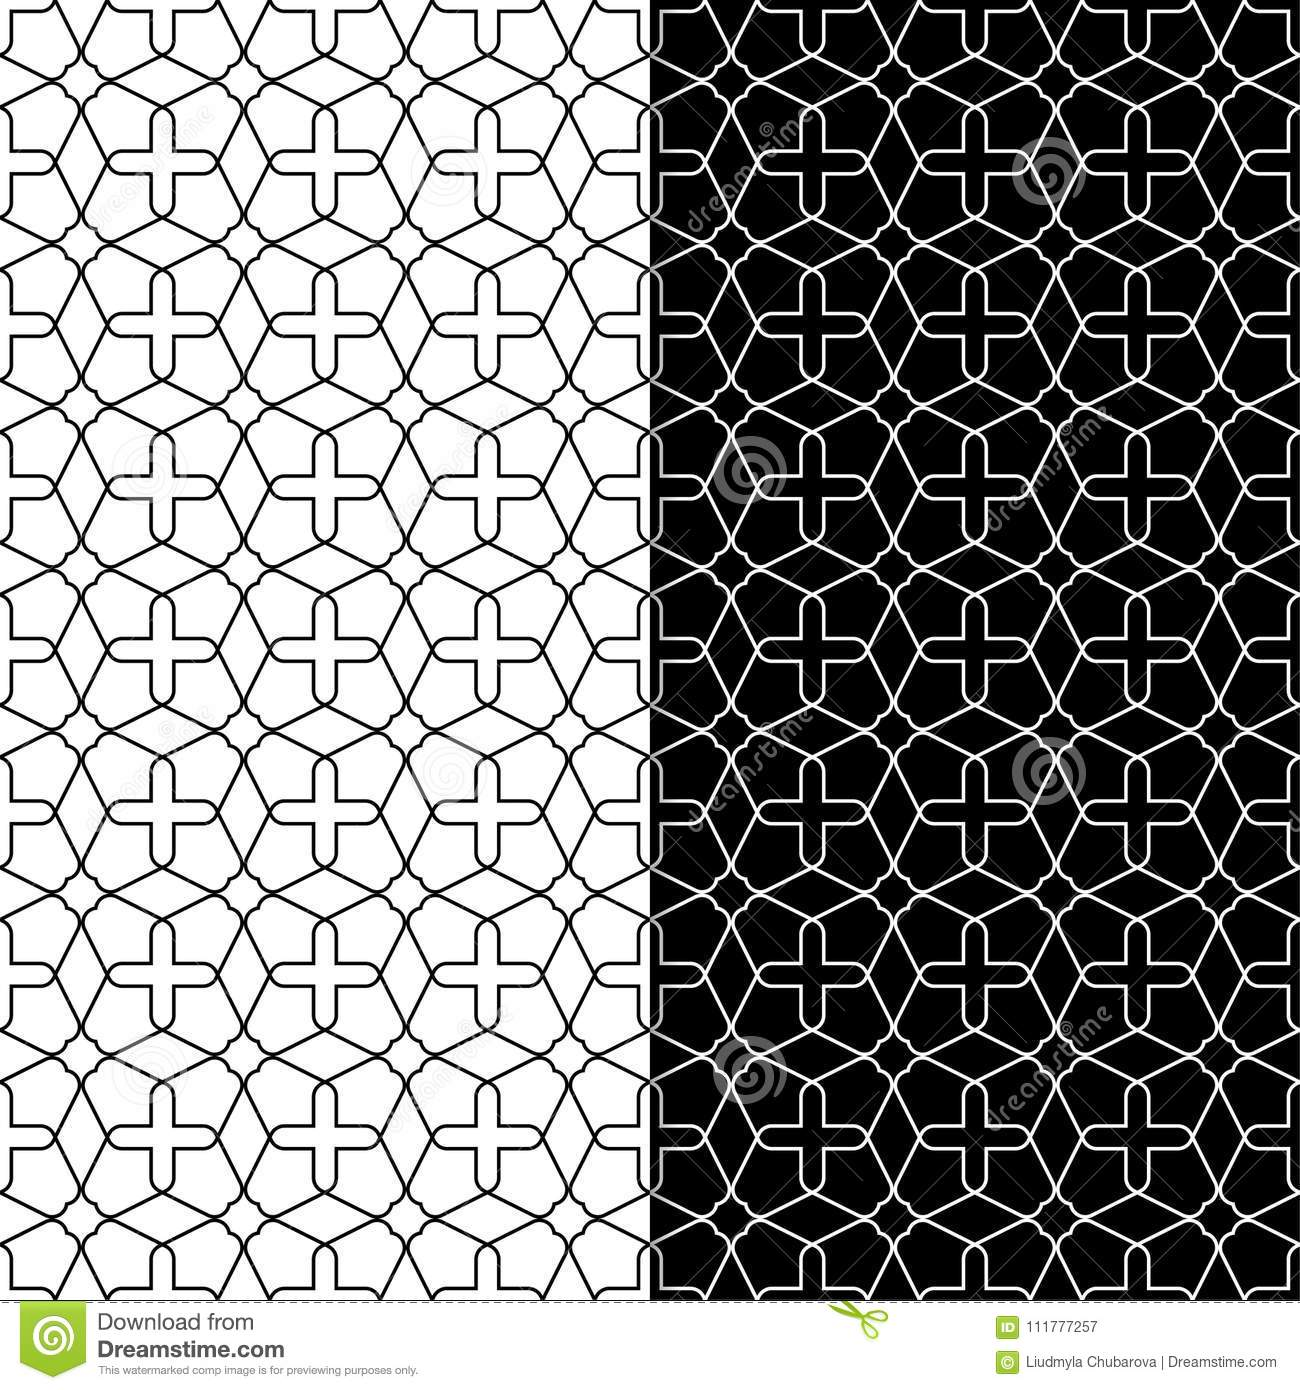 Black and white geometric ornaments. Set of seamless patterns